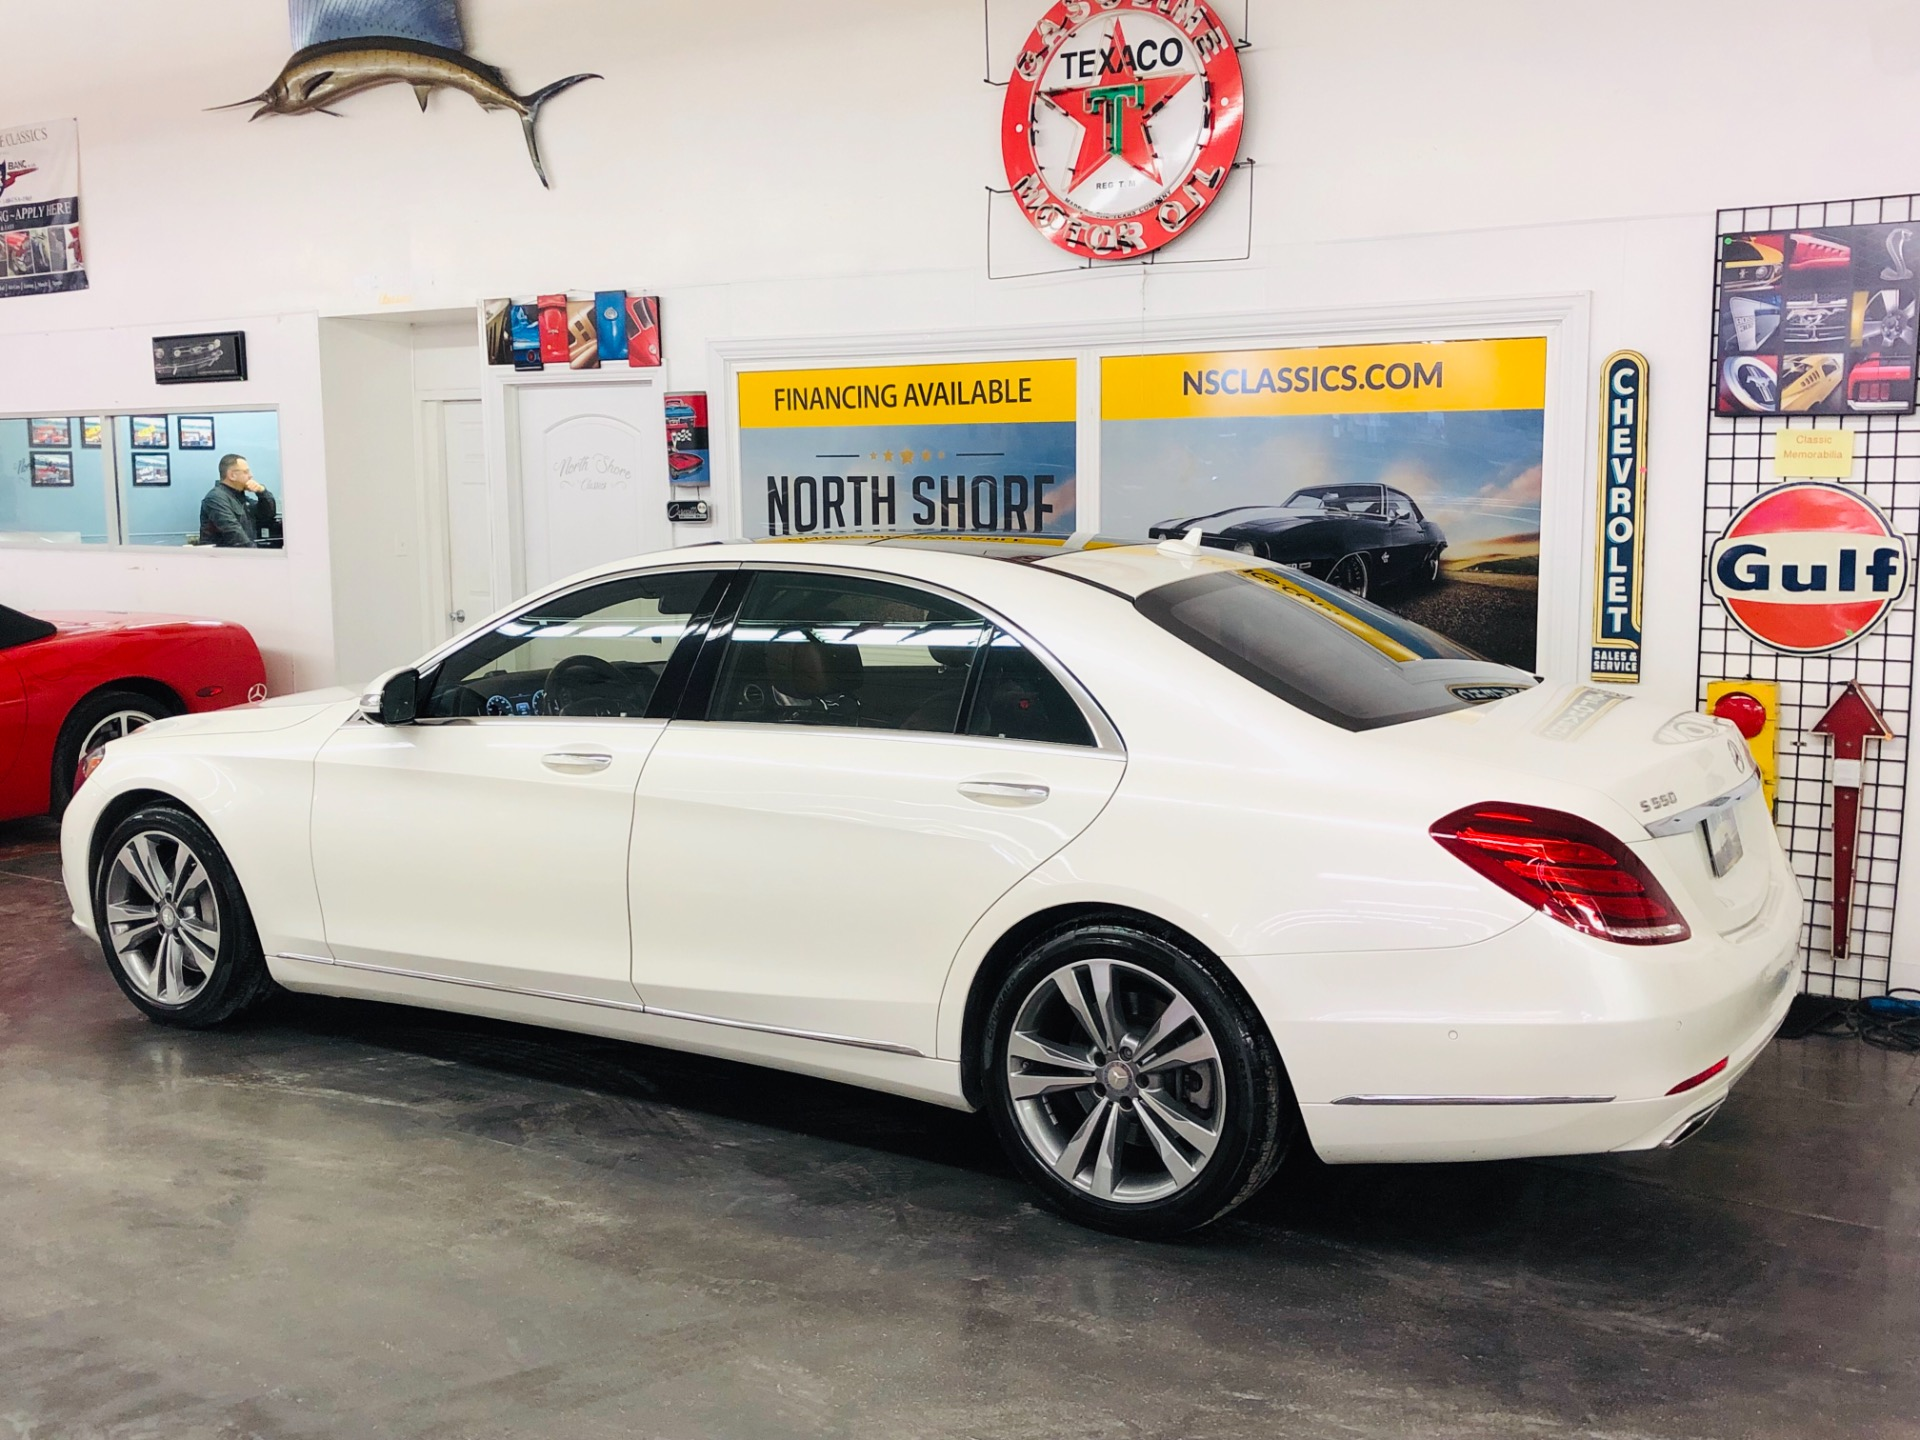 Used 2015 Mercedes Benz S-Class NO HAGGLE BUY IT NOW PRICE-S 550 4MATIC ALL WHEEL DRIVE TWIN TURBO- | Mundelein, IL